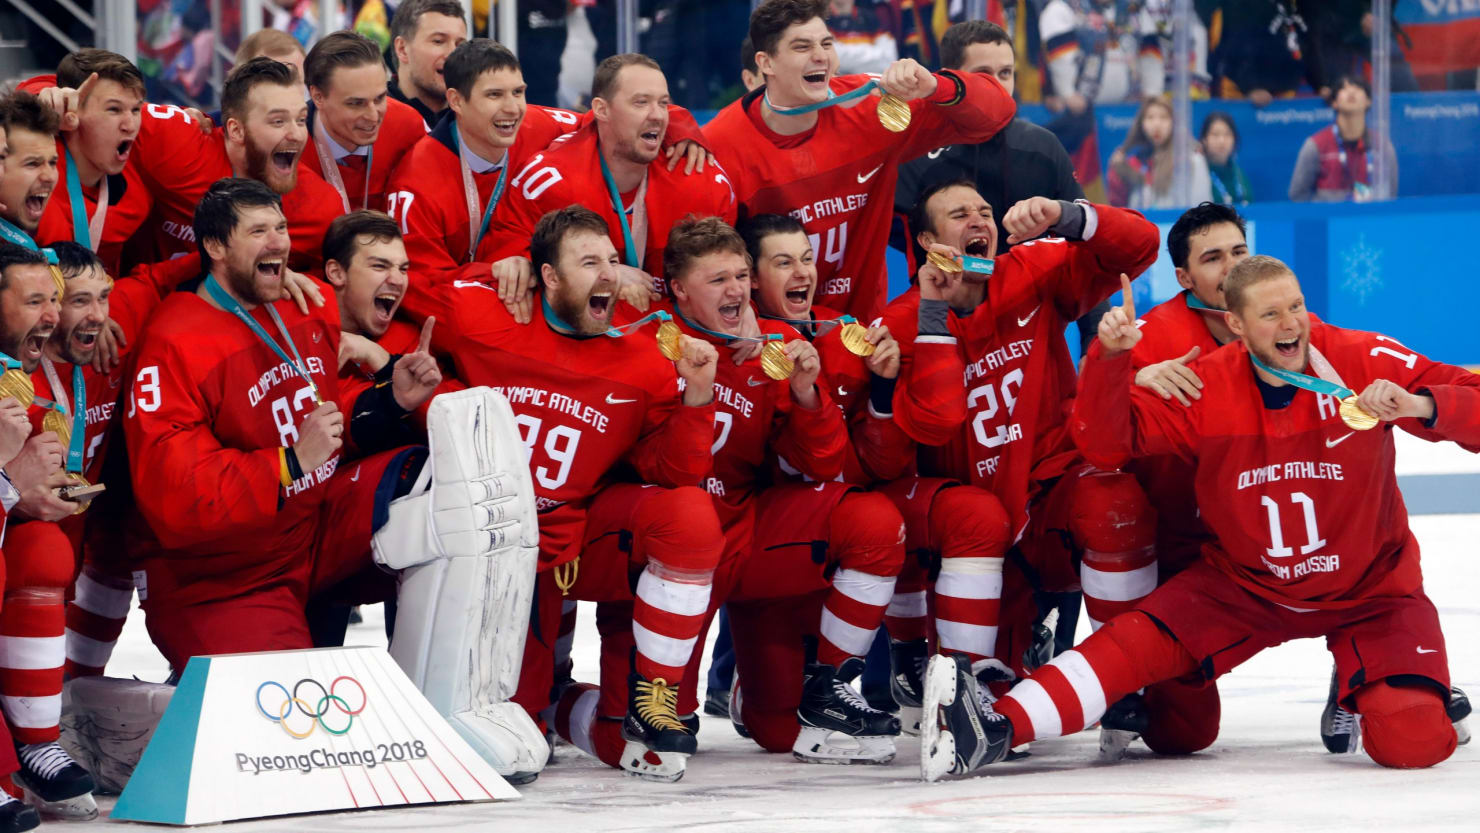 IOC did not remove the Russian team from the Olympics in Rio 13